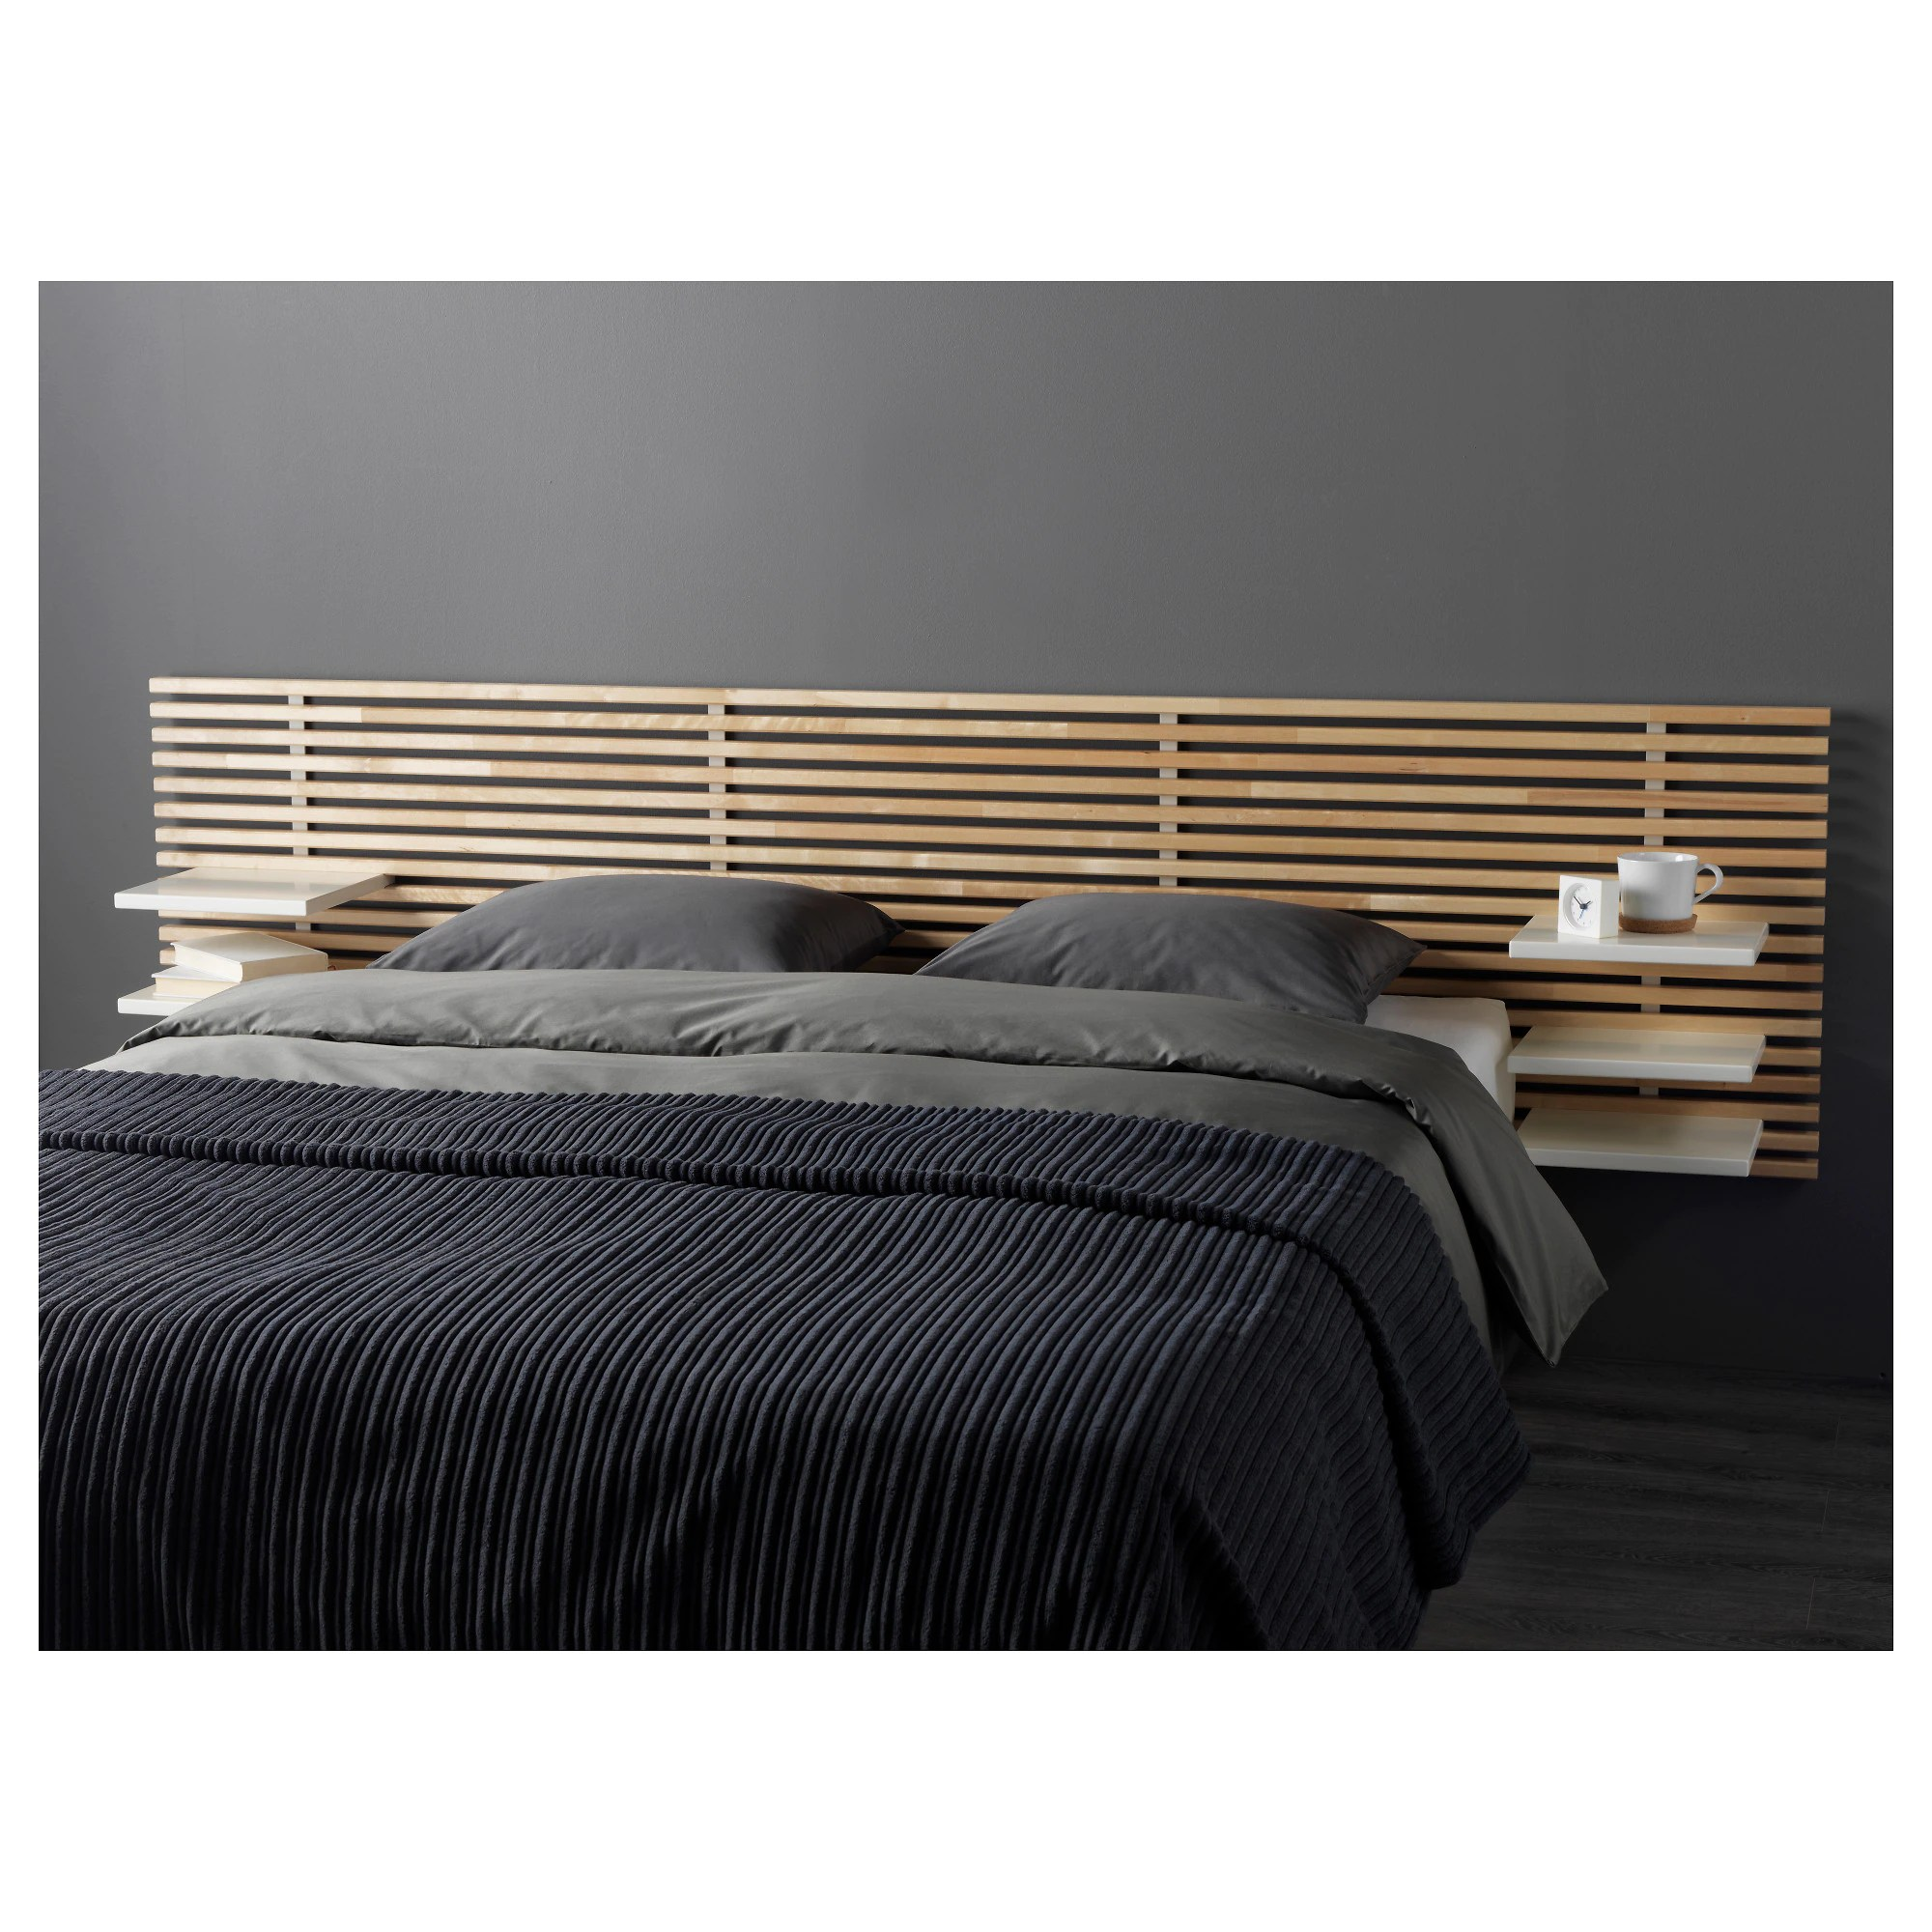 Ikea Mandal Ideas Mandal Headboard Birch White